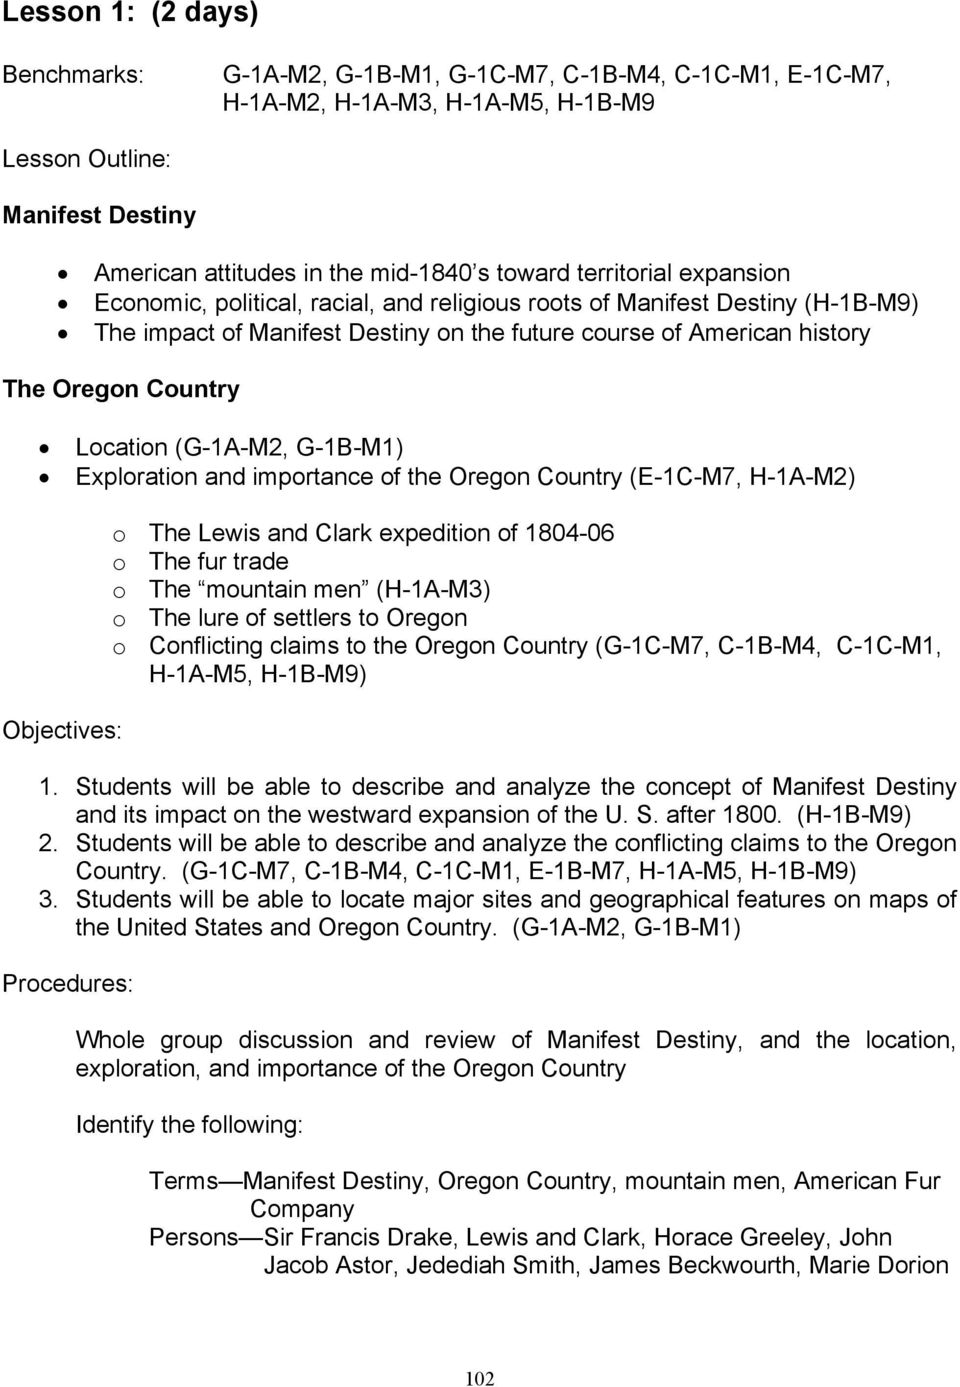 Location (G-1A-M2, G-1B-M1) Exploration and importance of the Oregon Country (E-1C-M7, H-1A-M2) Objectives: o The Lewis and Clark expedition of 1804-06 o The fur trade o The mountain men (H-1A-M3) o